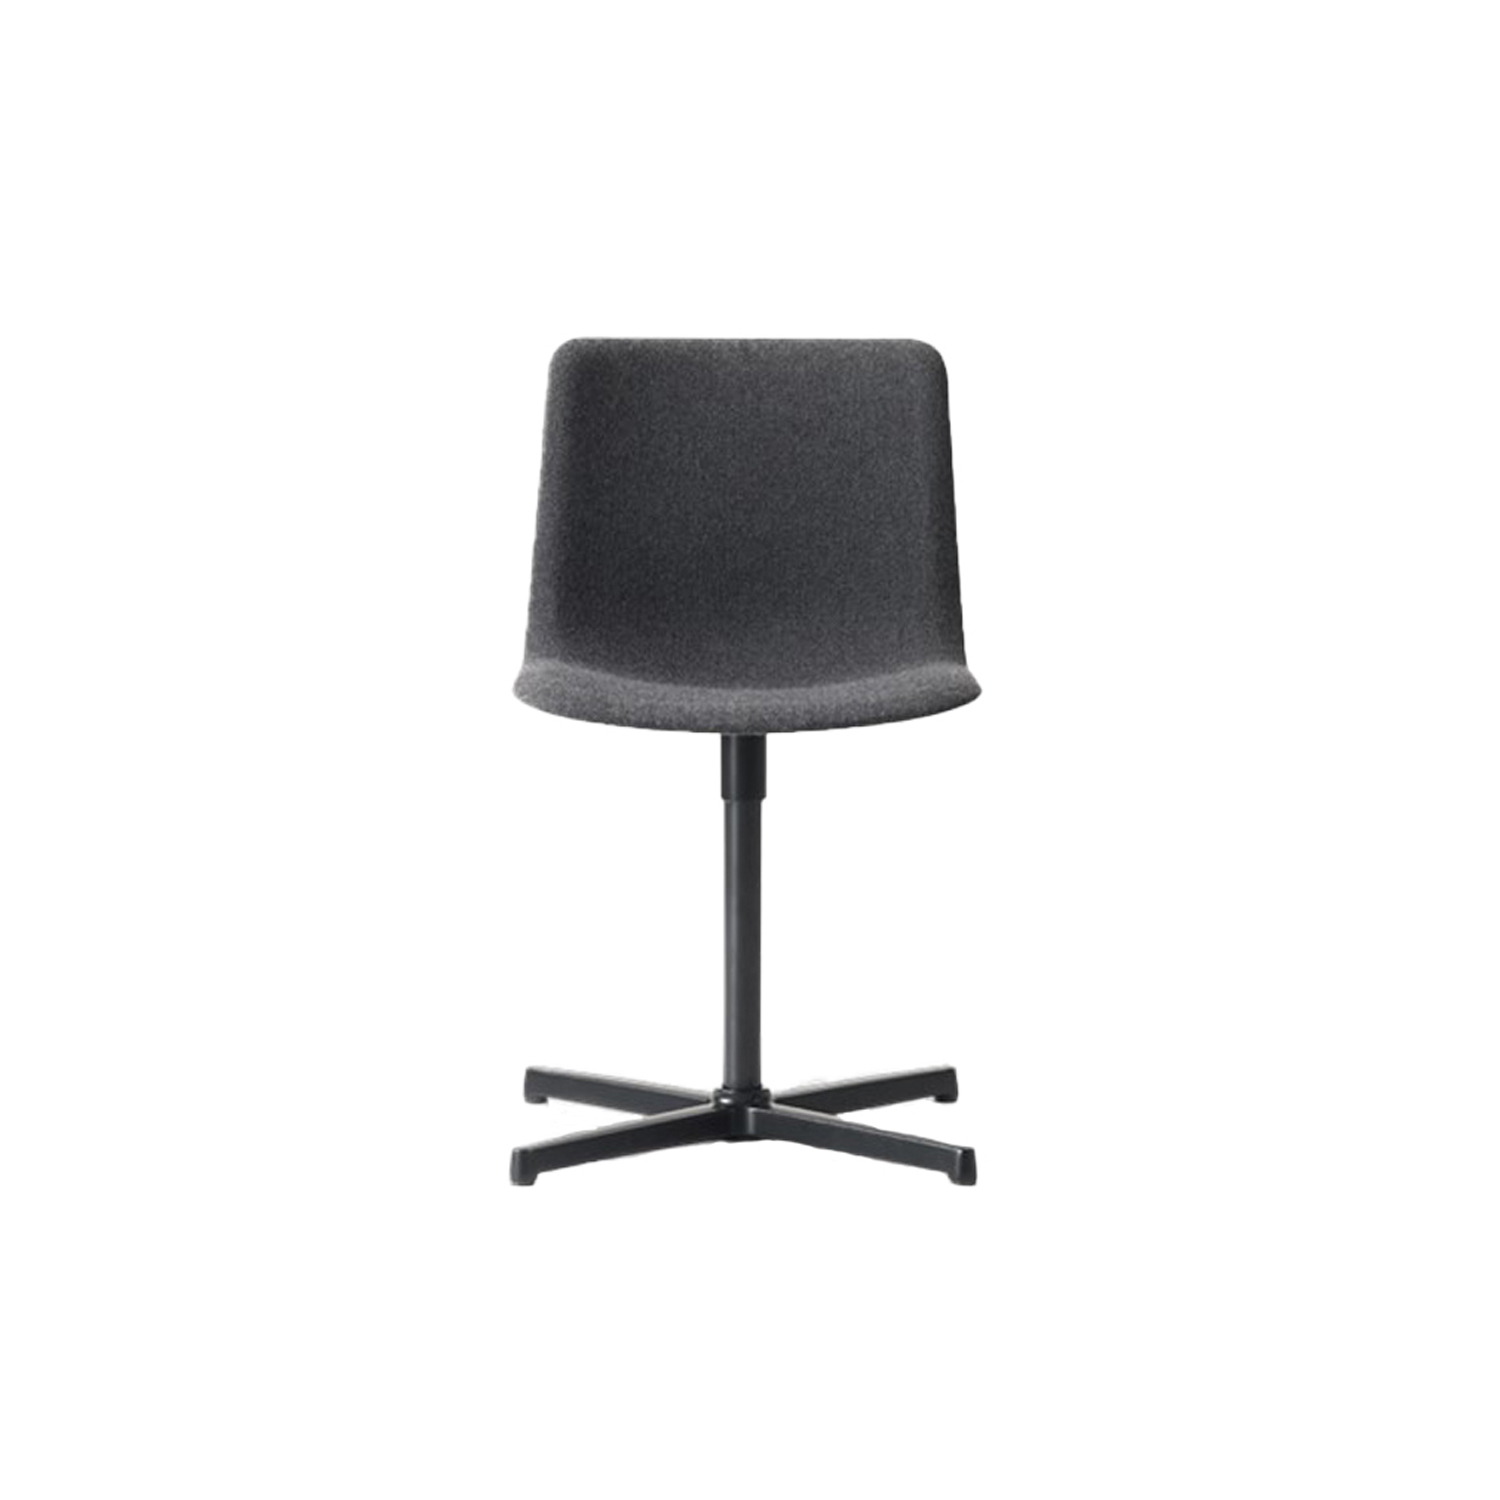 Pato Swivel X Base Chair Fully Upholstered - Pato Swivel features a 4-point swivel base with optional casters, making it ideal for both task seating and conference rooms. The chair can be tuned from basic to exclusive with optional upholstery.  Pato is a prime example of our focus on sustainability and protecting the environment, reflected in a chair that's 100% renewable and recyclable. All components can be incorporated into future furniture production, thus contributing to a circular economy by minimising the use of materials, resources, waste and pollution.   Merging traditional production methods with cutting-edge technology, Pato is a human-centric, highly versatile series of multi-purpose functional furniture that draws on our in-depth experience with materials, immaculate detailing and heritage of fine craftsmanship. Allowing us to apply our high standards of texture, finish and carpentry techniques to an array of materials in addition to wood for products aimed at a mass market.   With its clean lines and curves, Pato echoes the ethos of Danish-Icelandic design duo Welling/Ludvik. Demonstrating their belief that good design has the ability to be interesting, even when reduced to its most simple form. Where anything extraneous is eliminated and every detail has a purpose.   Together we spent nearly three years developing the shell structure to have a soft surface that's also wear and tear resistant. Enhancing the chair's ability to optimally conform to the user's body is a subtle beveled edge. A technique from classic cabinetmaking, which gives the chair a sense of handcrafted finesse. Each Pato is detailed and finished by hand by our highly skilled crafts people, who refine the beveled edge and the silky, resilient surface. Setting a new standard for the execution and finish of polypropylene.   Since the success of its initial launch, we've expanded Pato into an extensive collection of variants, featuring armchairs, barstools, office swivel chairs and a lon